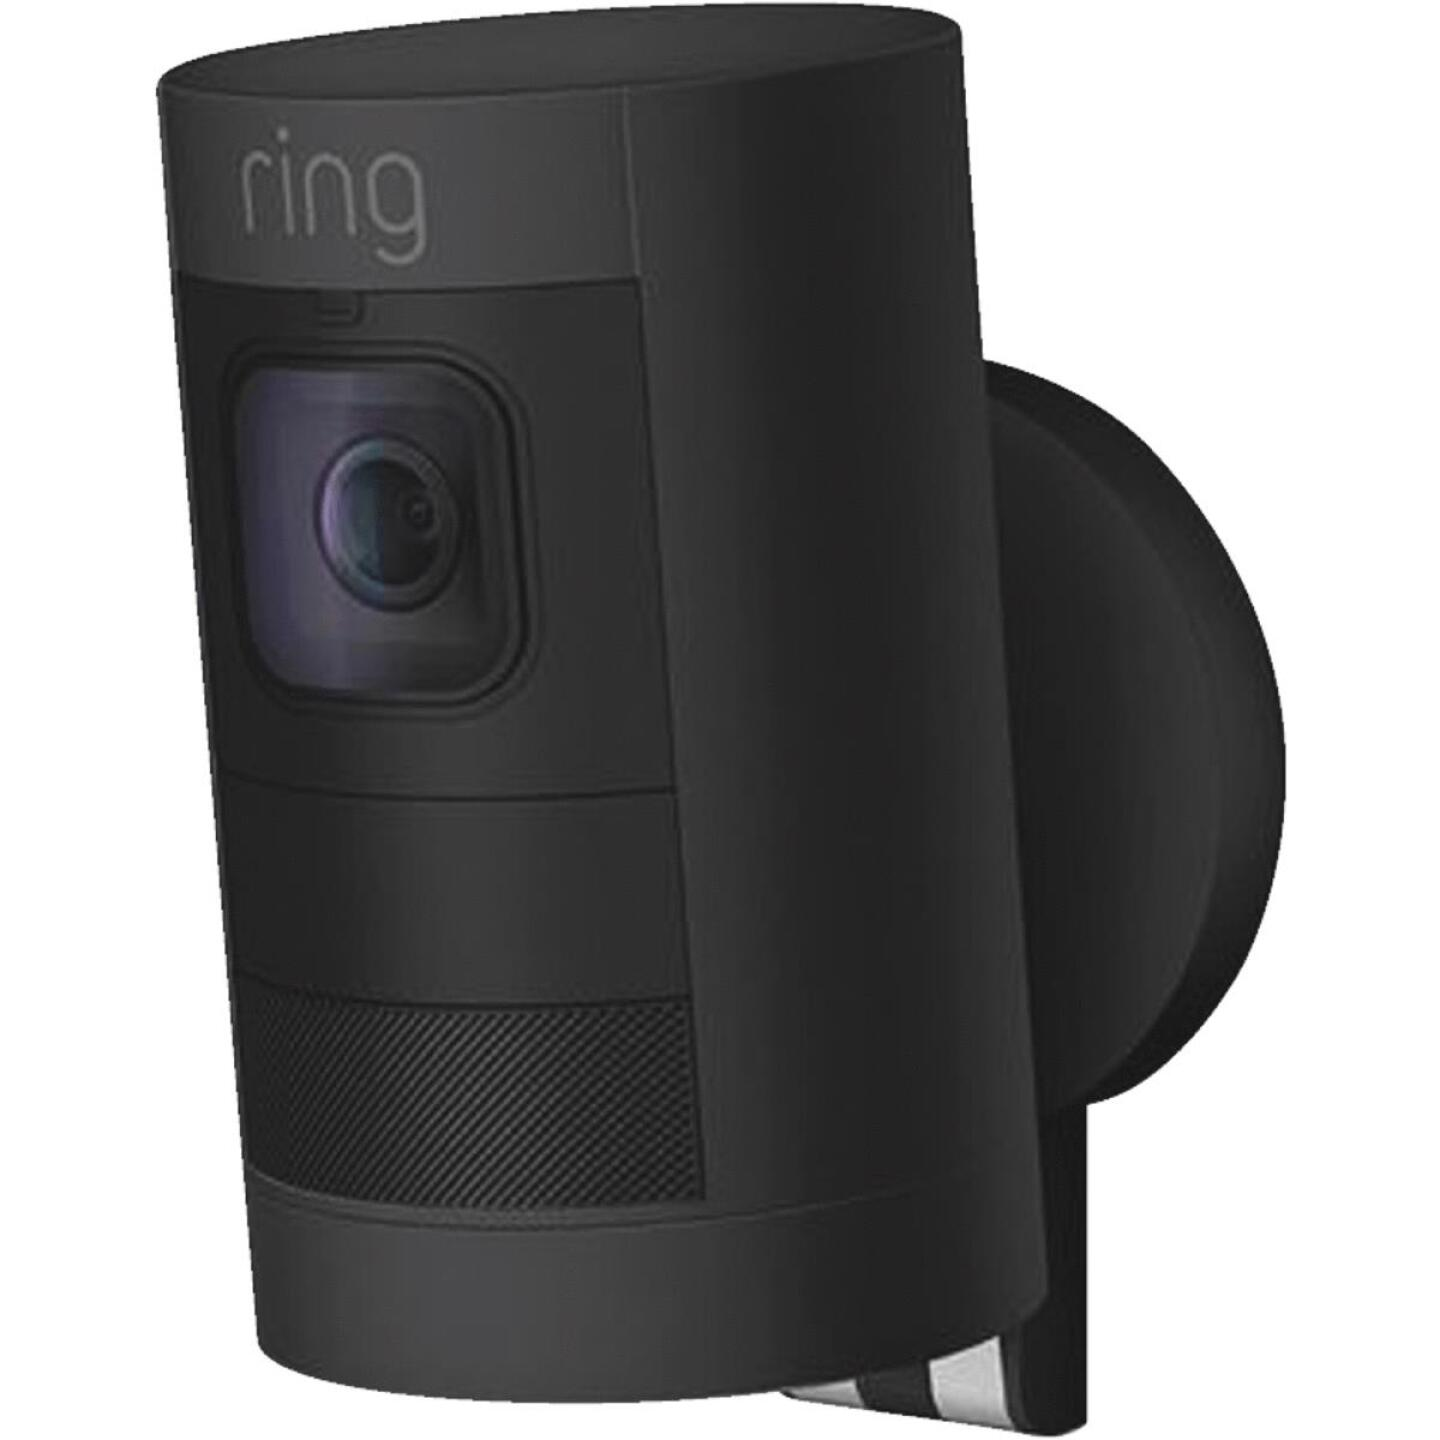 Ring Stick Up Cam Battery Operated Indoor/Outdoor Black Security Camera Image 3